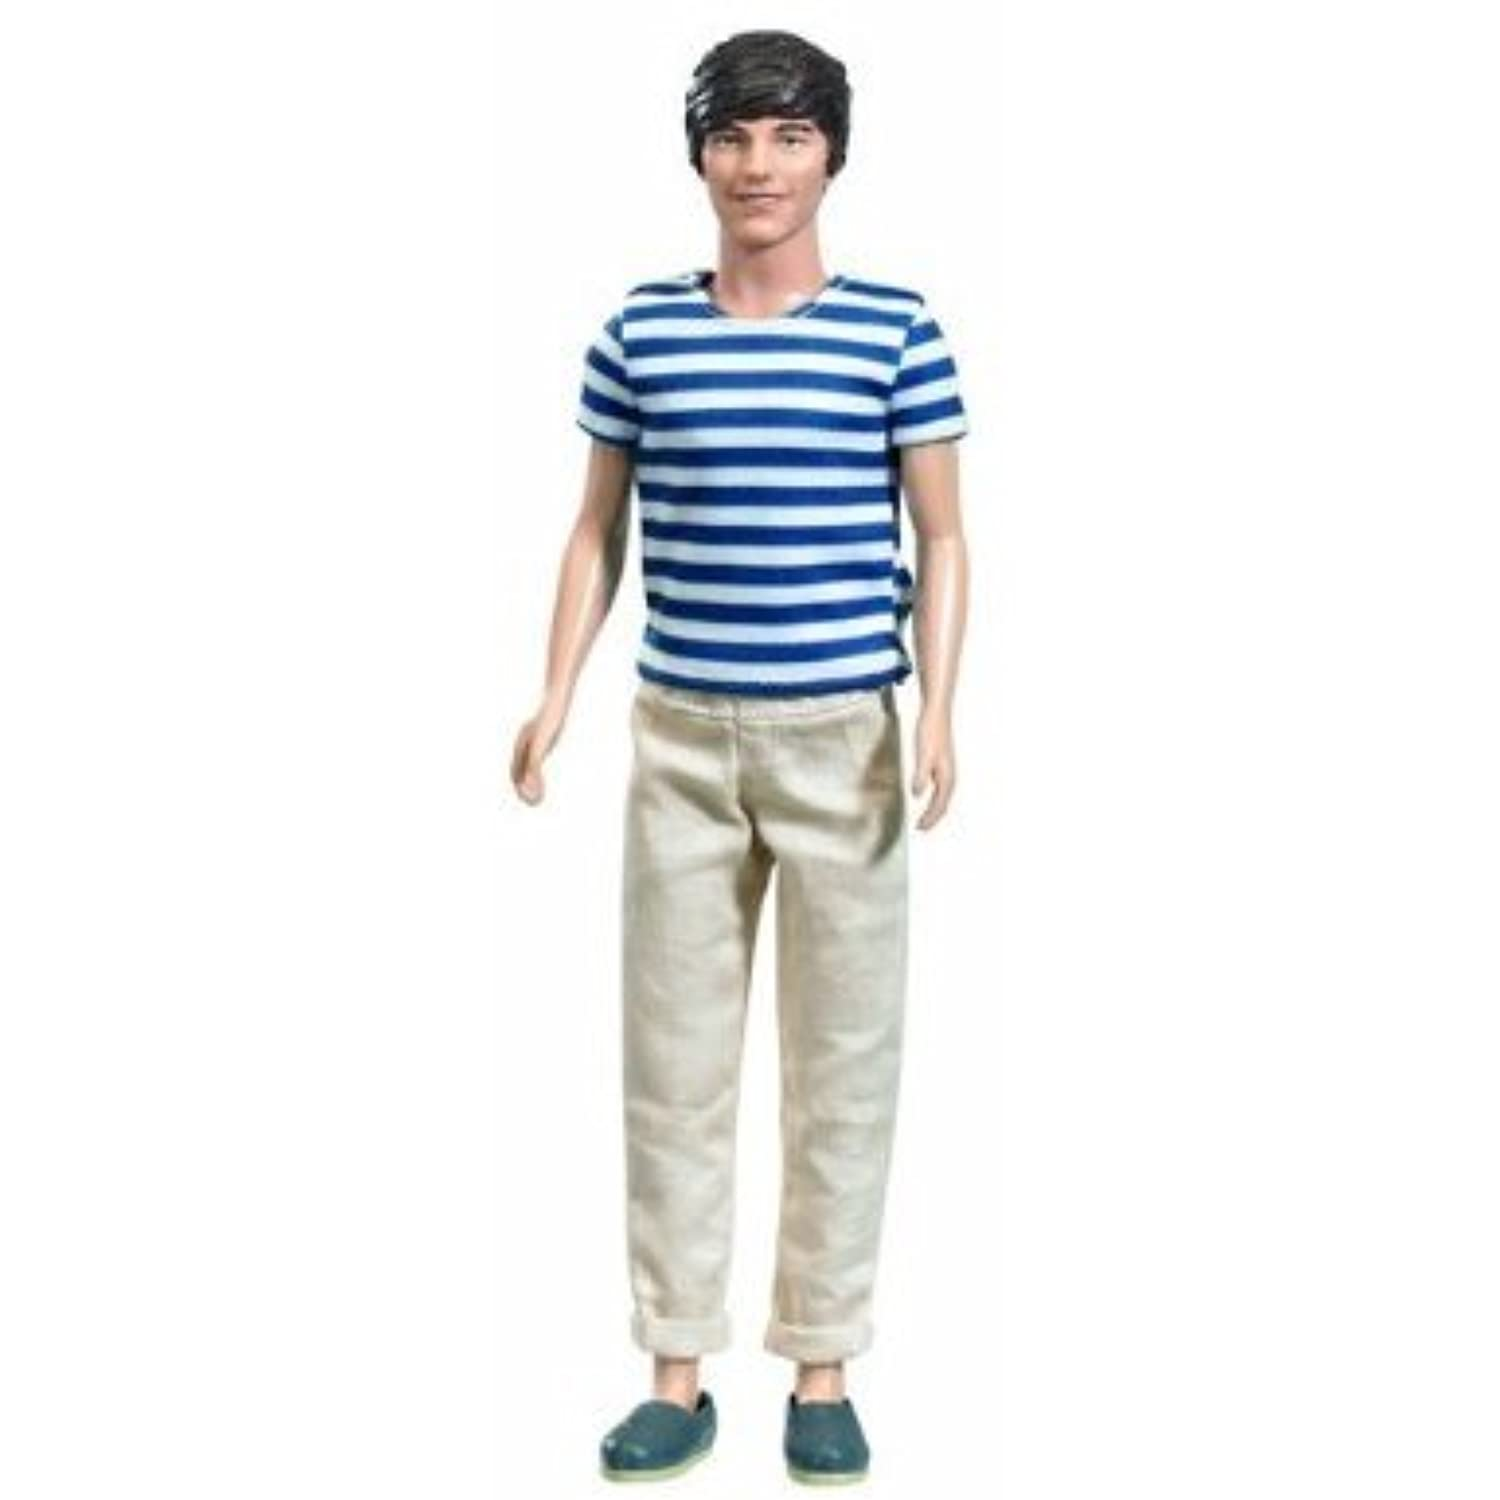 1dコレクター人形 – Louis Cute Gift for Everyone Fast Shipping